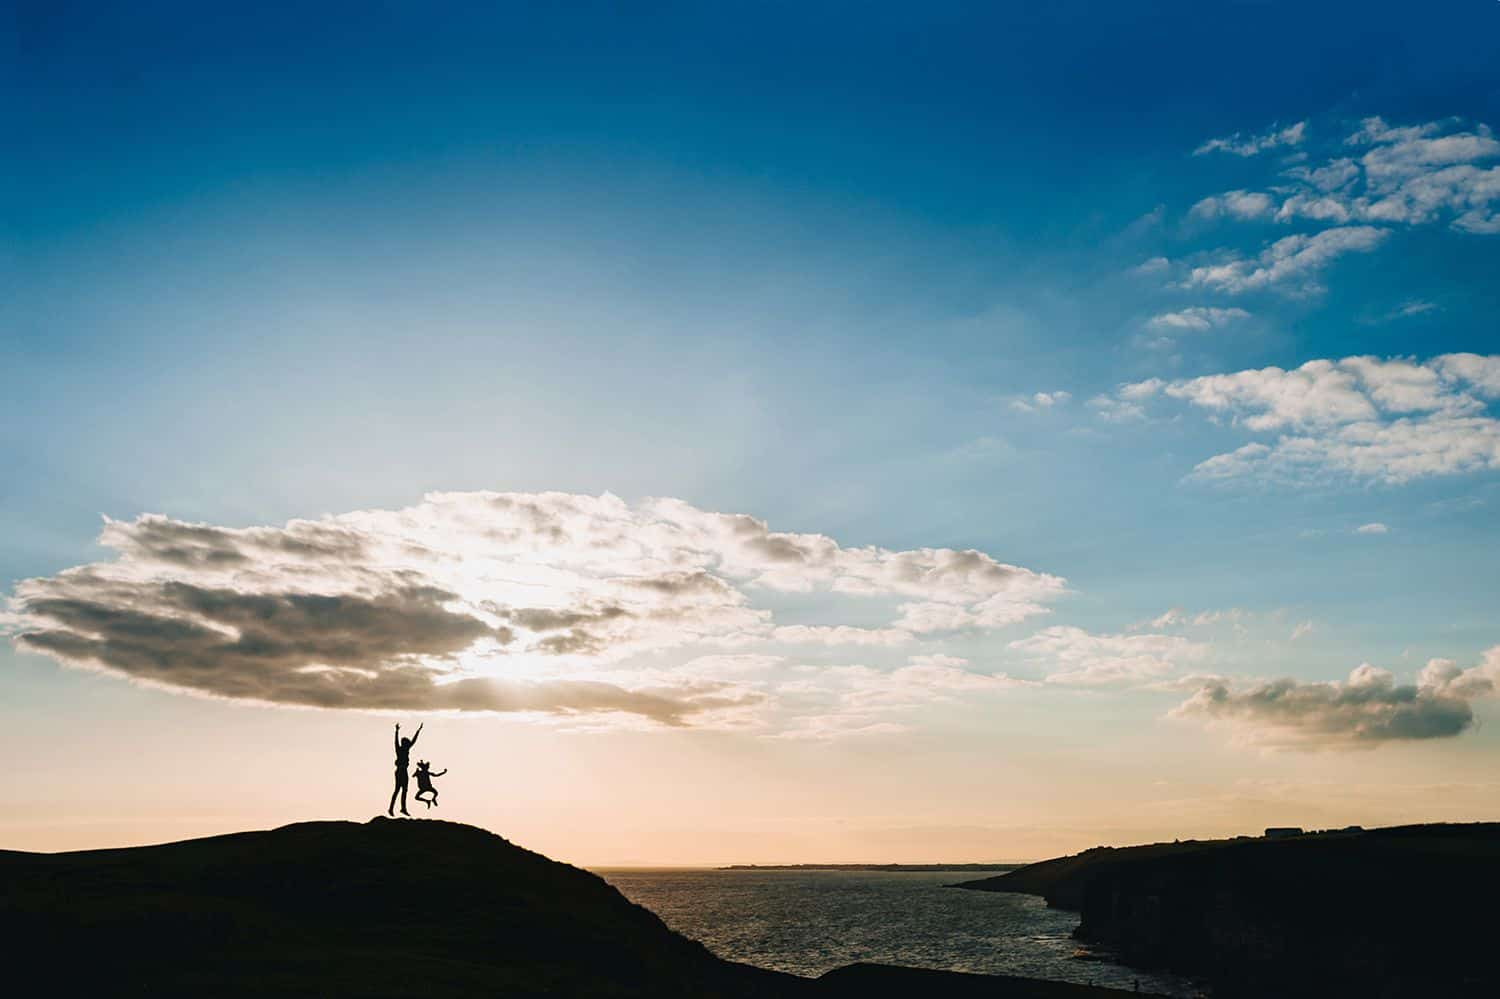 Silhouette of a parent and a child jumping on a hill overlooking the ocean.